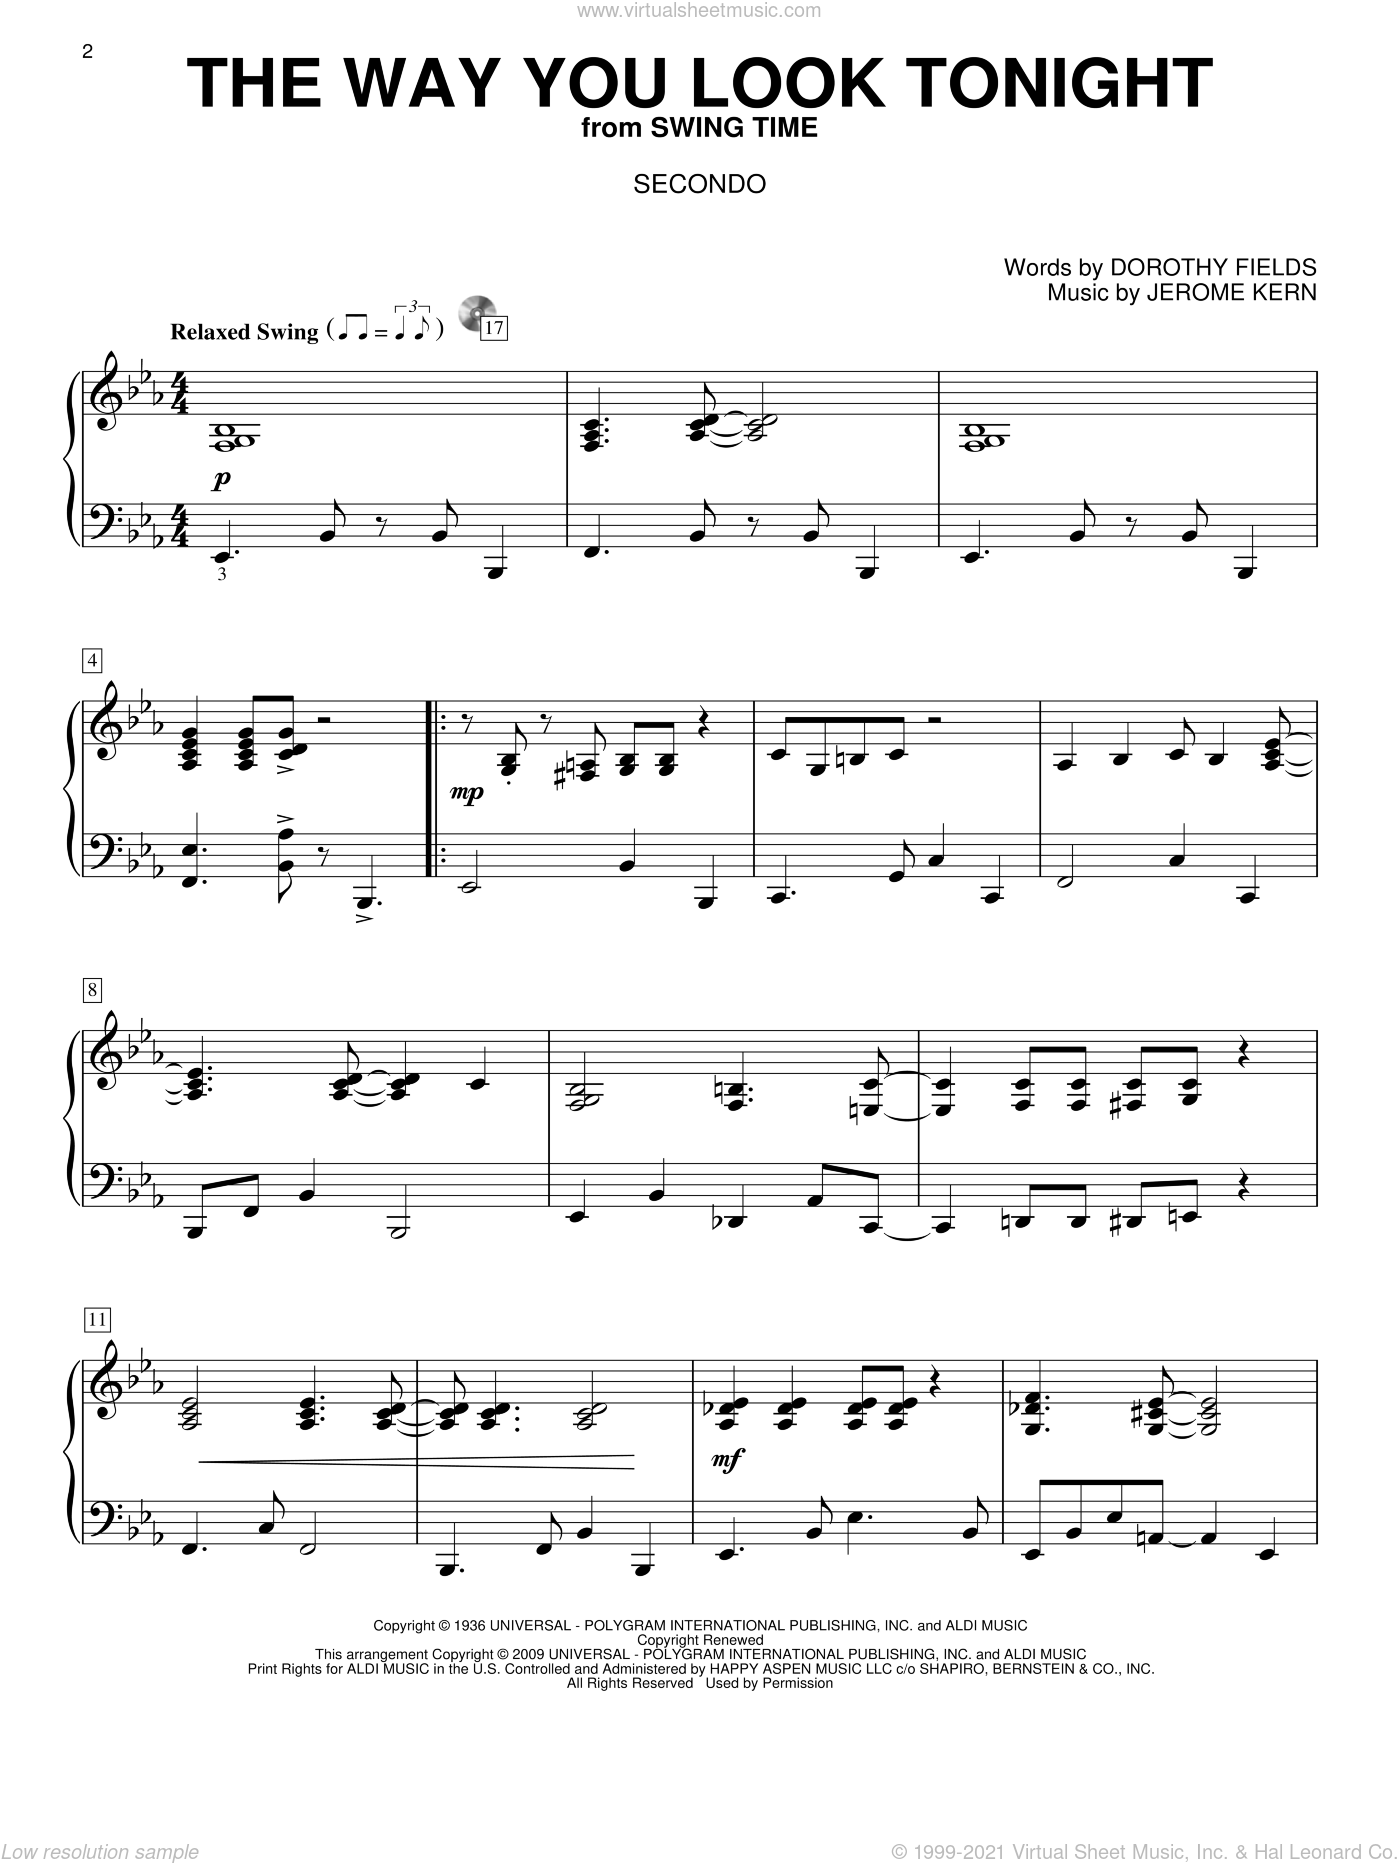 The Way You Look Tonight sheet music for piano four hands (duets) by Dorothy Fields